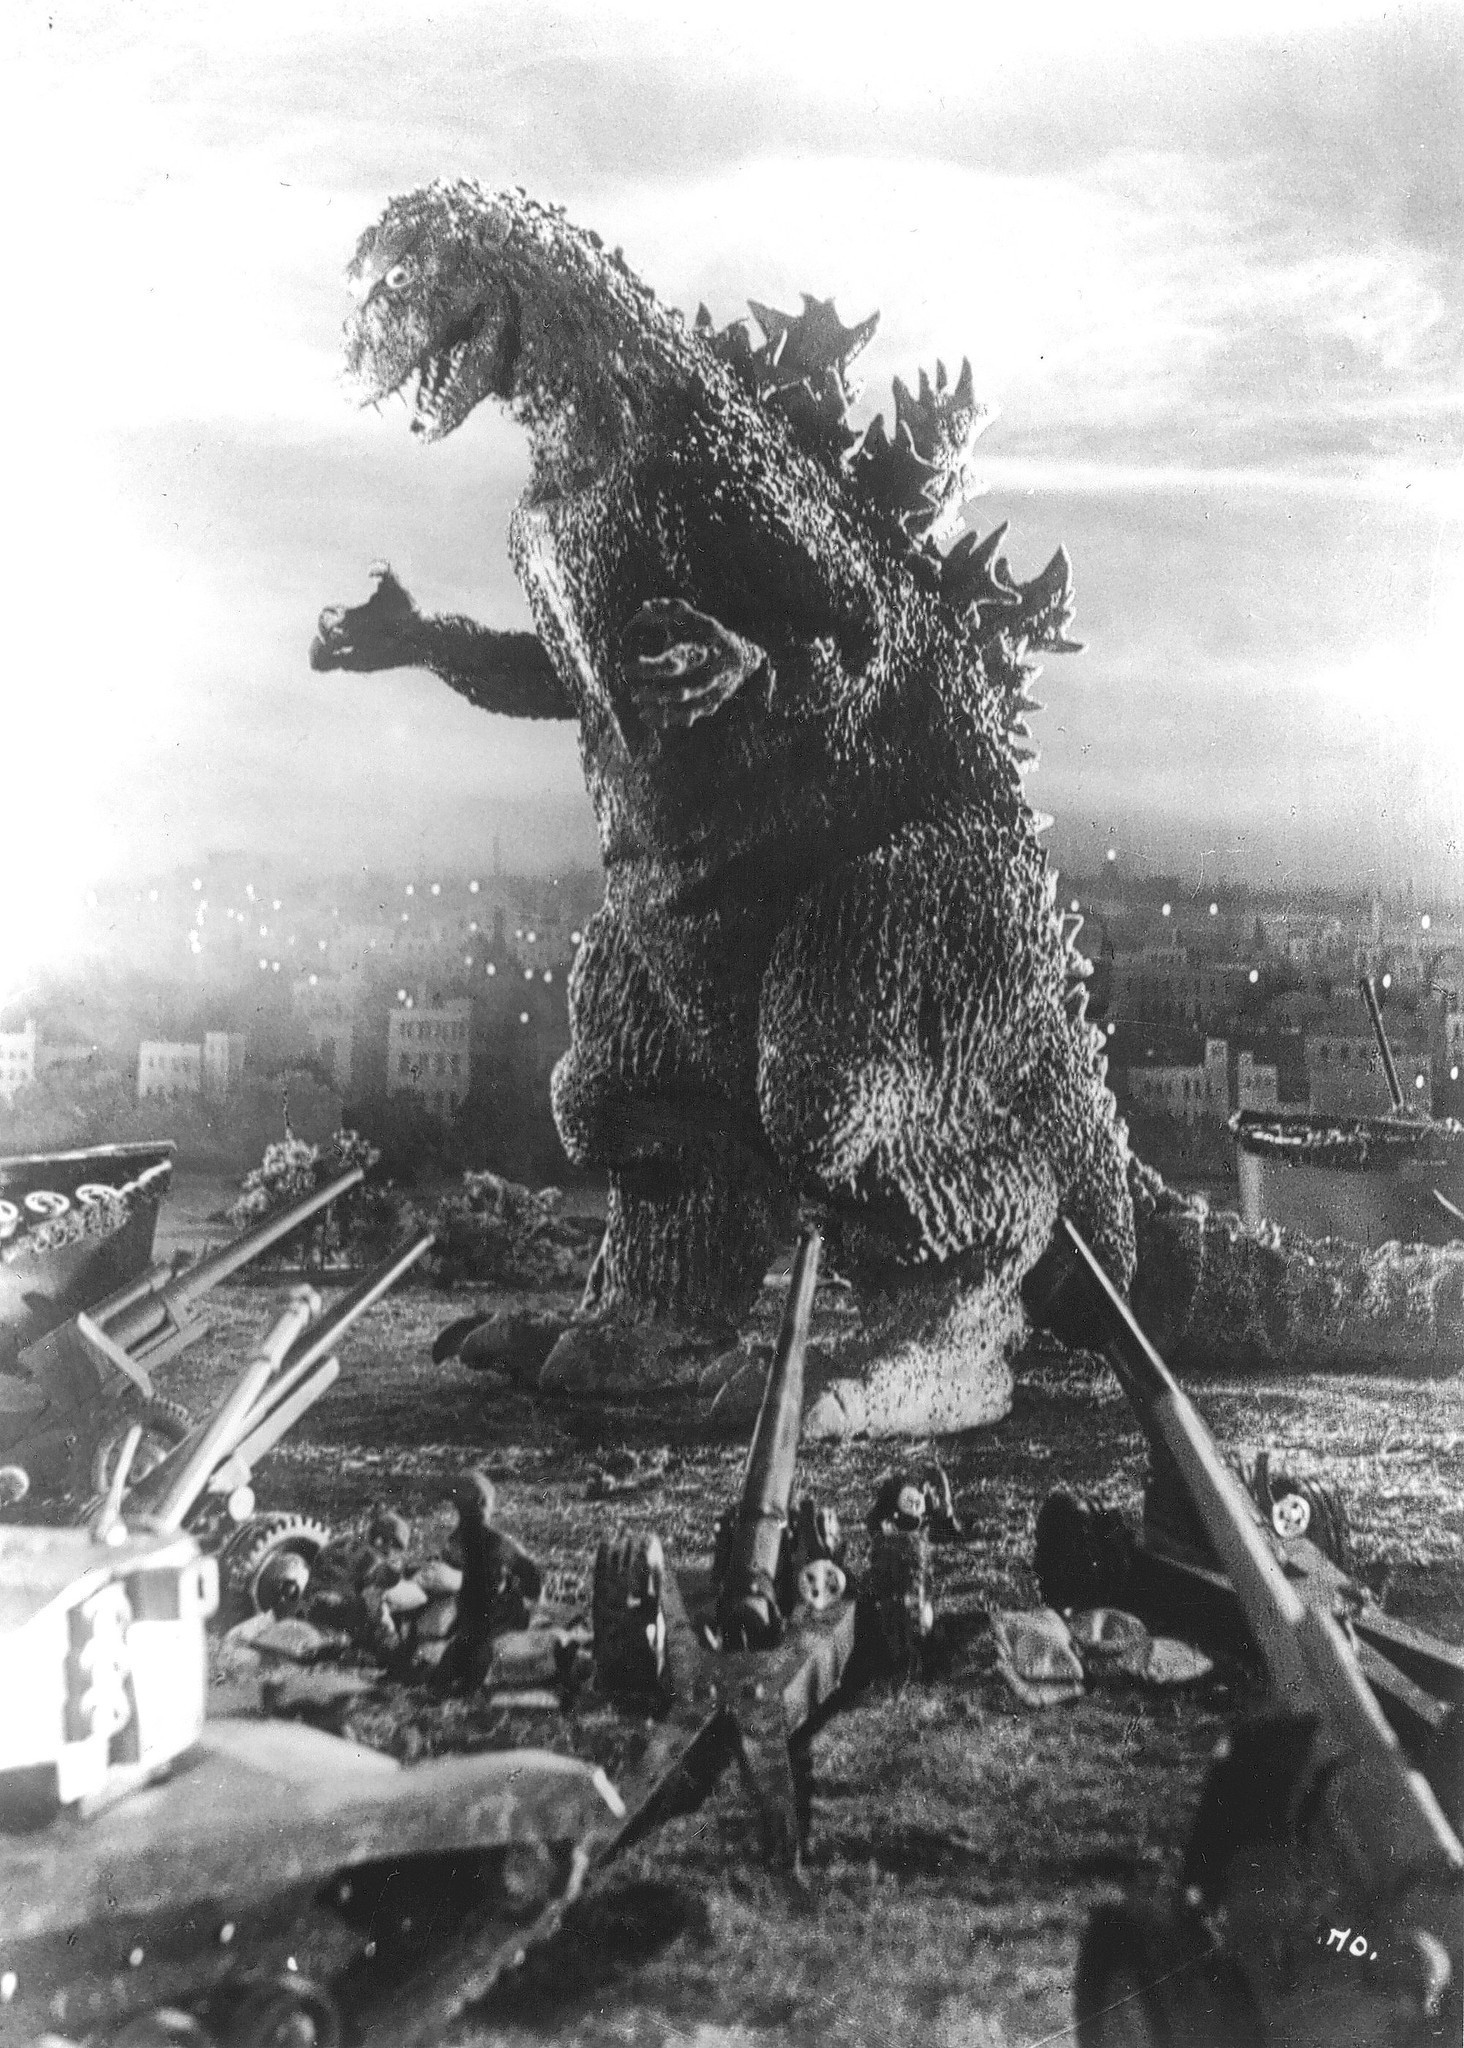 a review of the 1954 movie japans godzilla In 1954, gojira hit japanese theaters and was a sensation that eventually spread world wide for those who don't know, gojira is the original japanese godzilla movie that started the series.